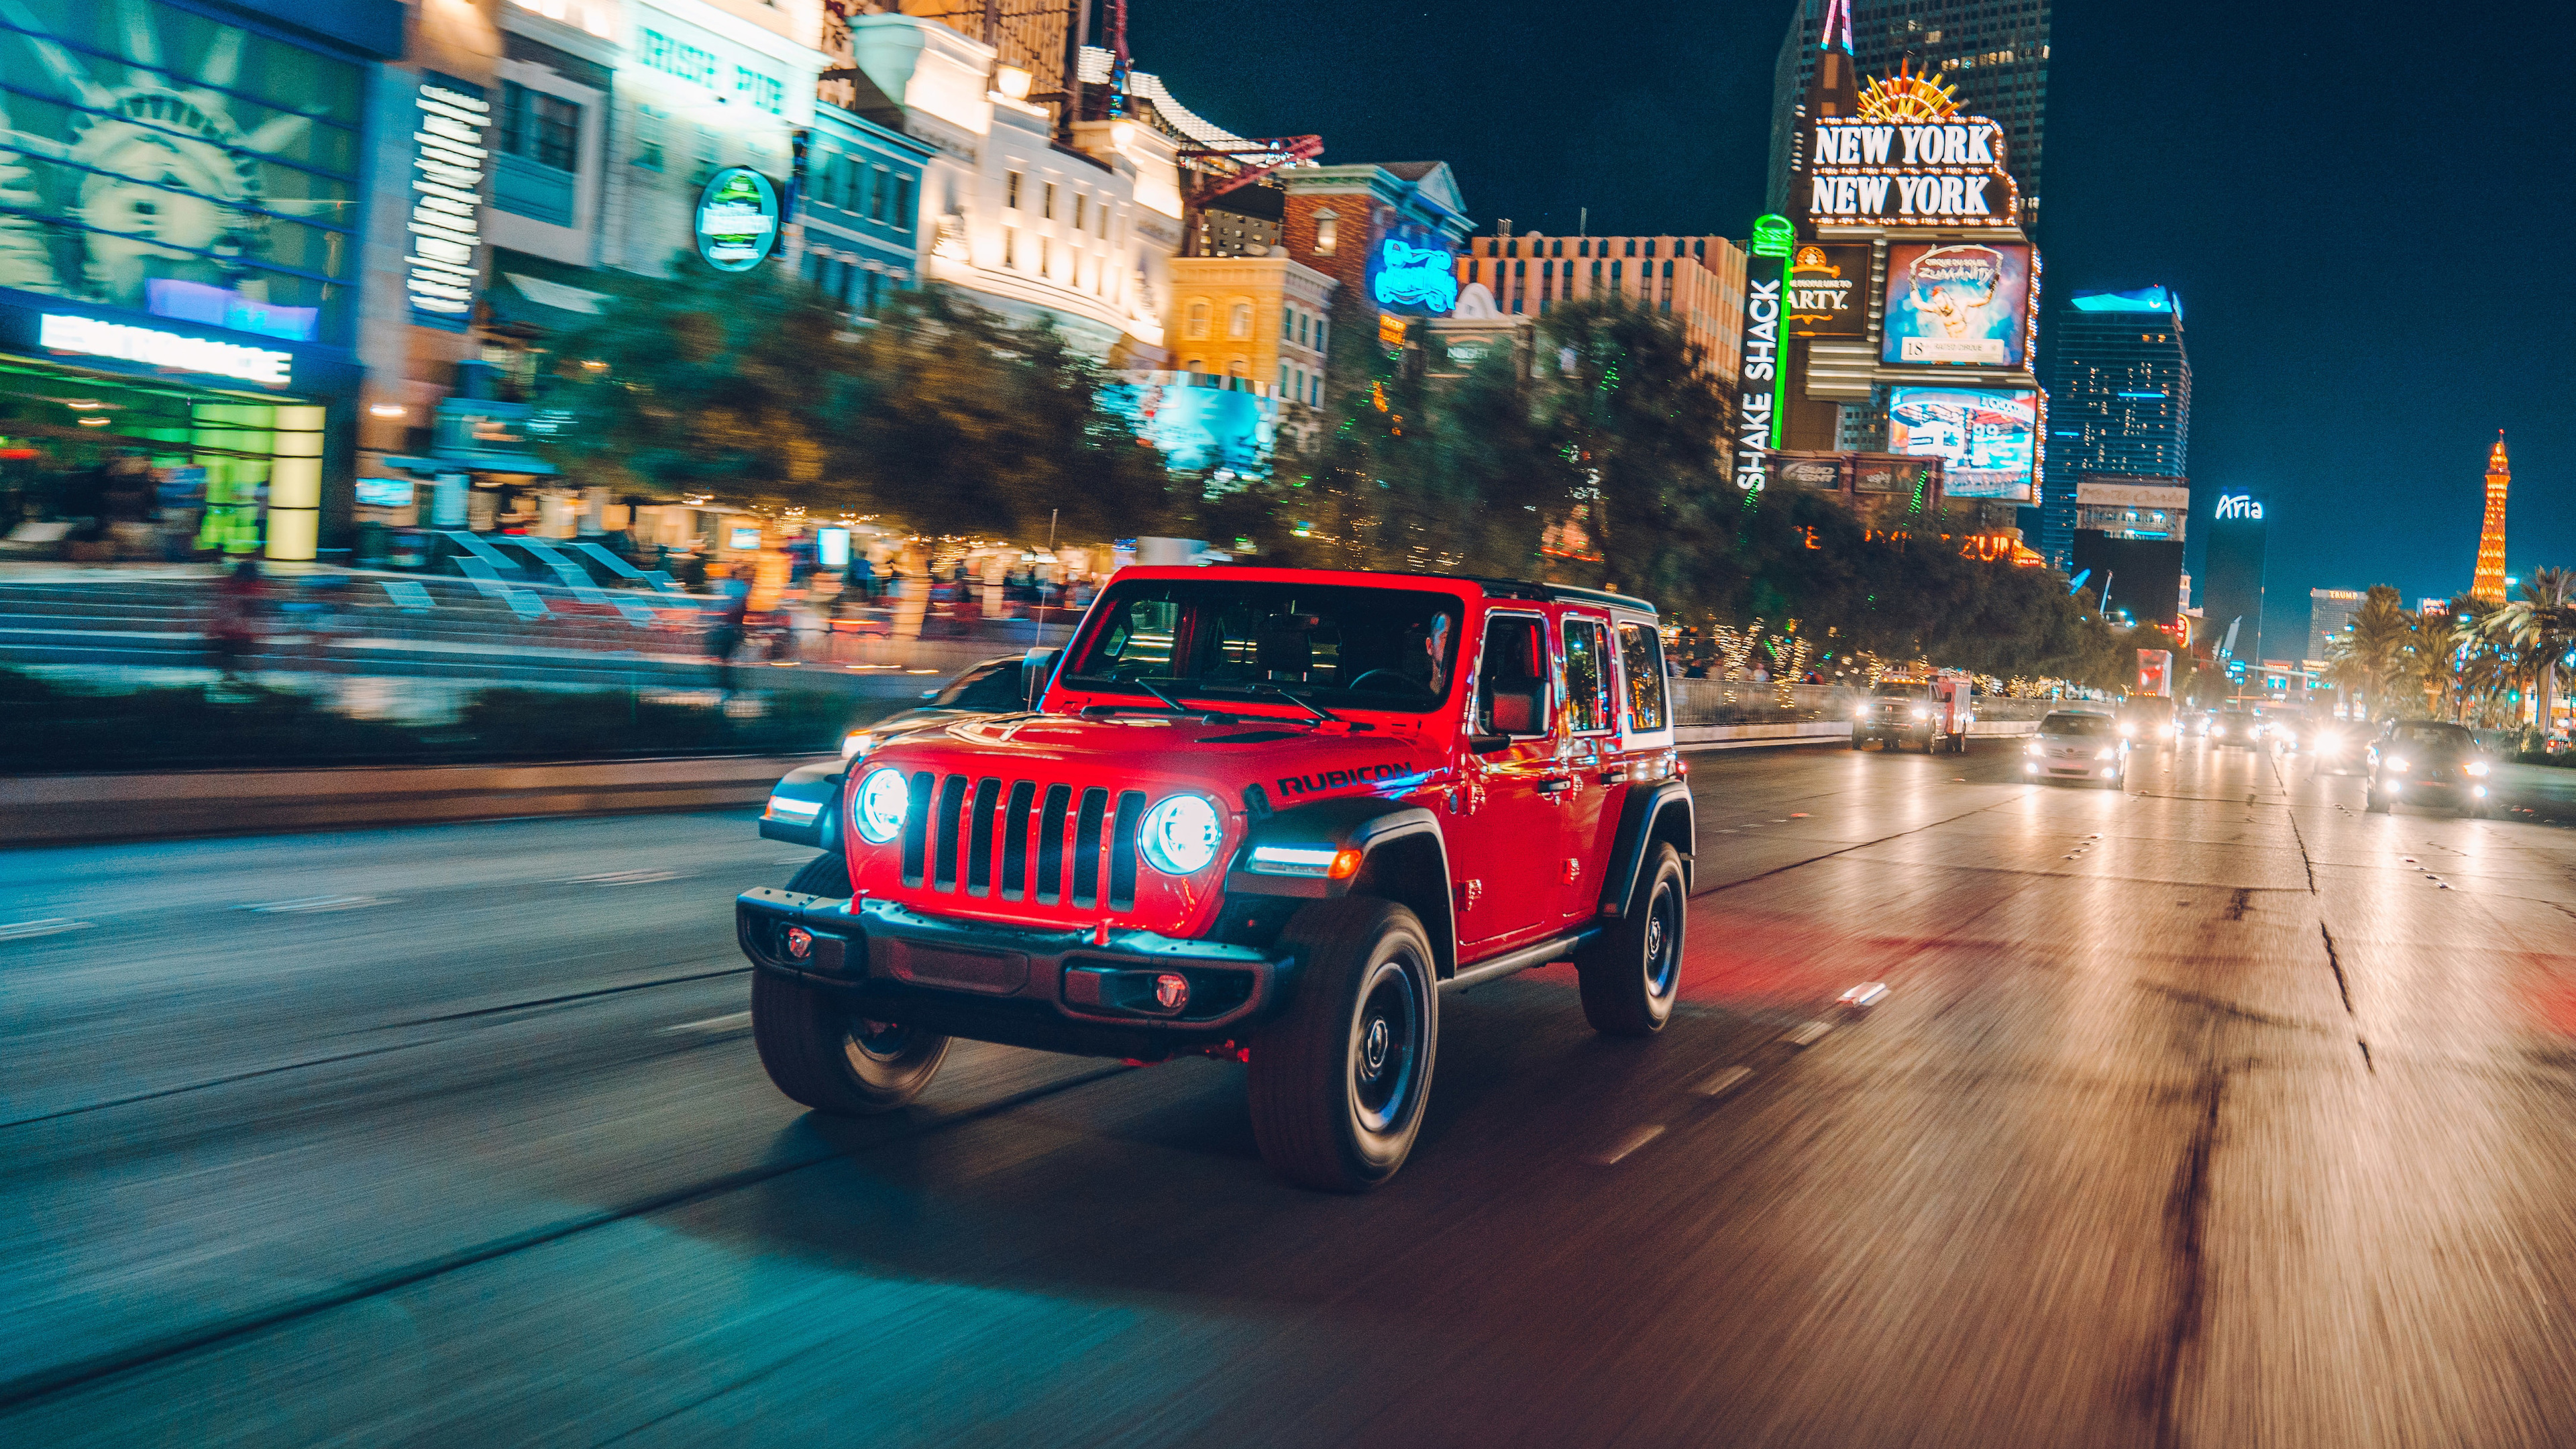 Wallpaper 4k Jeep Wrangler 4k Wallpapers 5k Wallpapers Cars